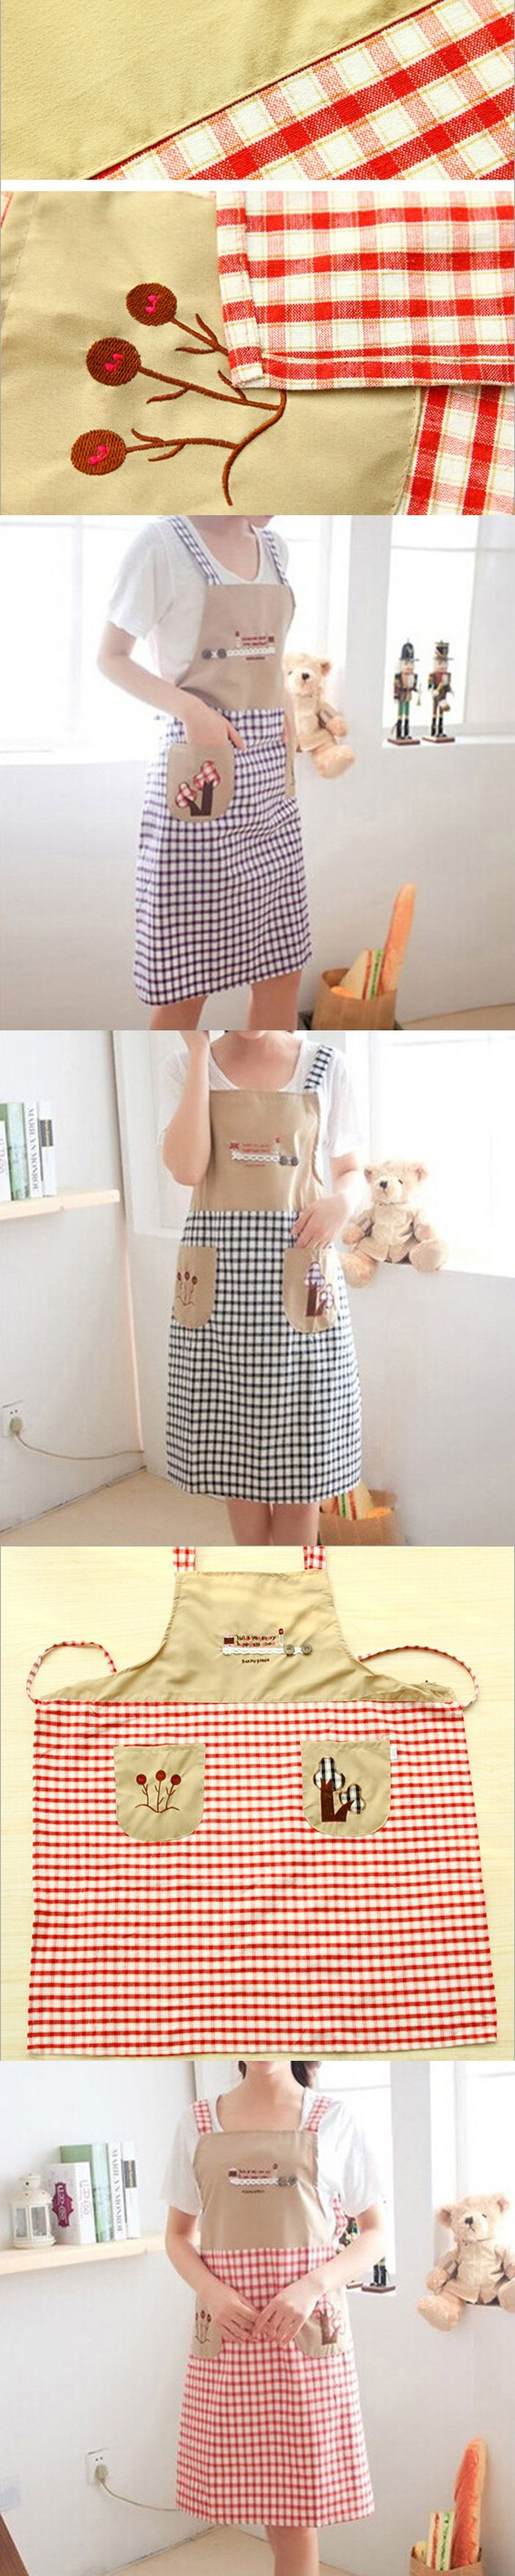 Catton Linen Embroidery Aprons Adjustable Sleeveless Cooking Work Aprons Kitchen Apron Schort Chef Apron